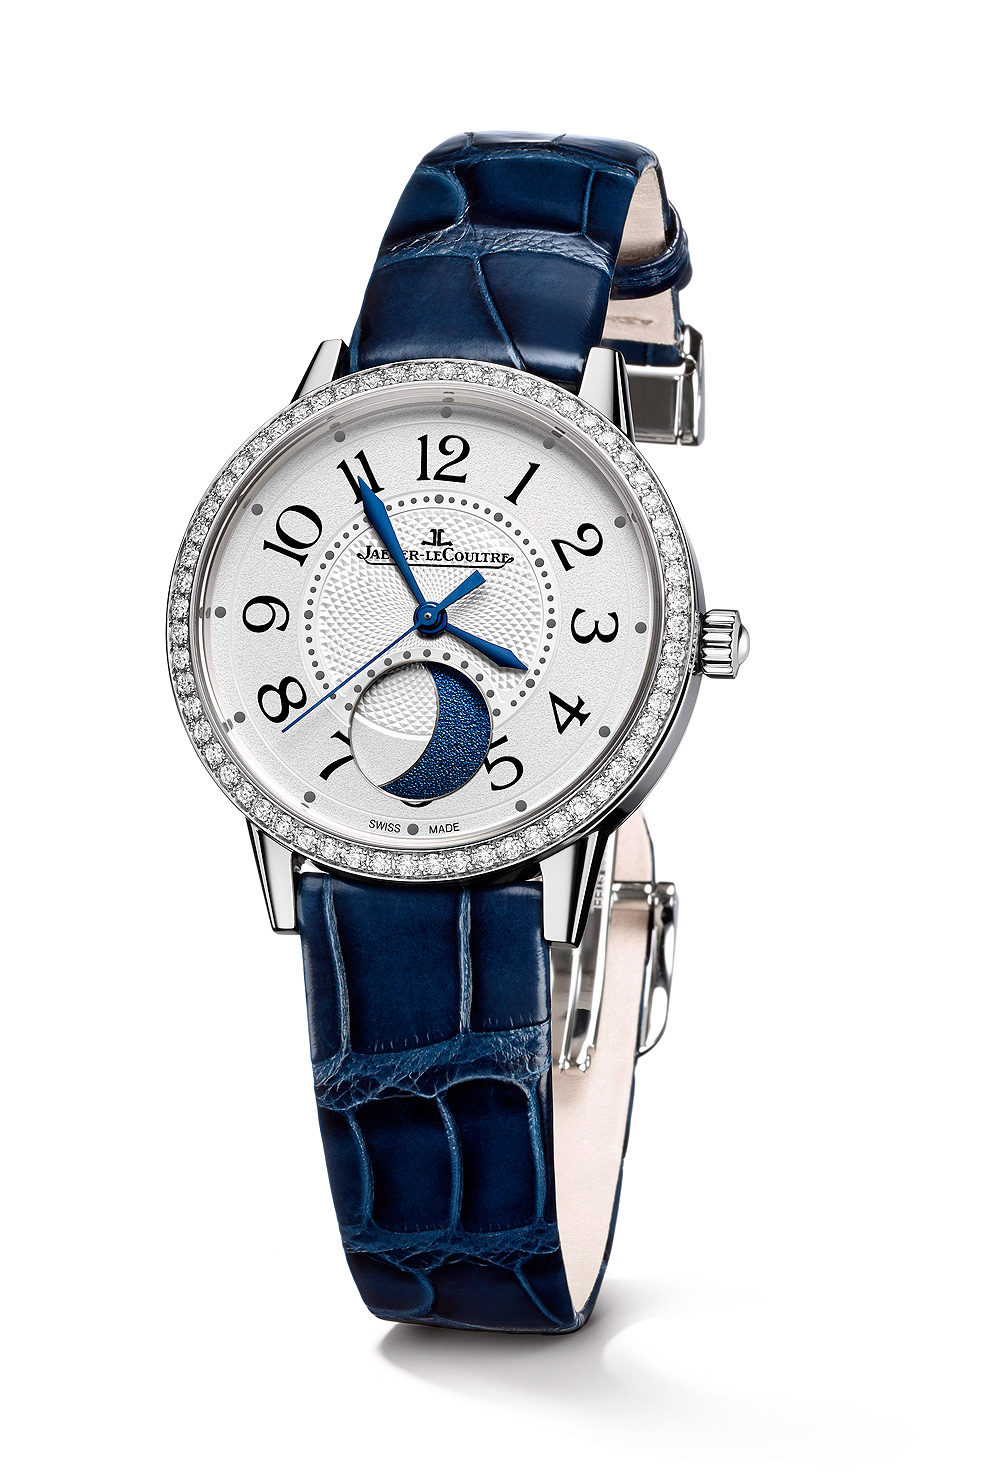 Military Time: 10 Watches With NATO Straps › WatchTime